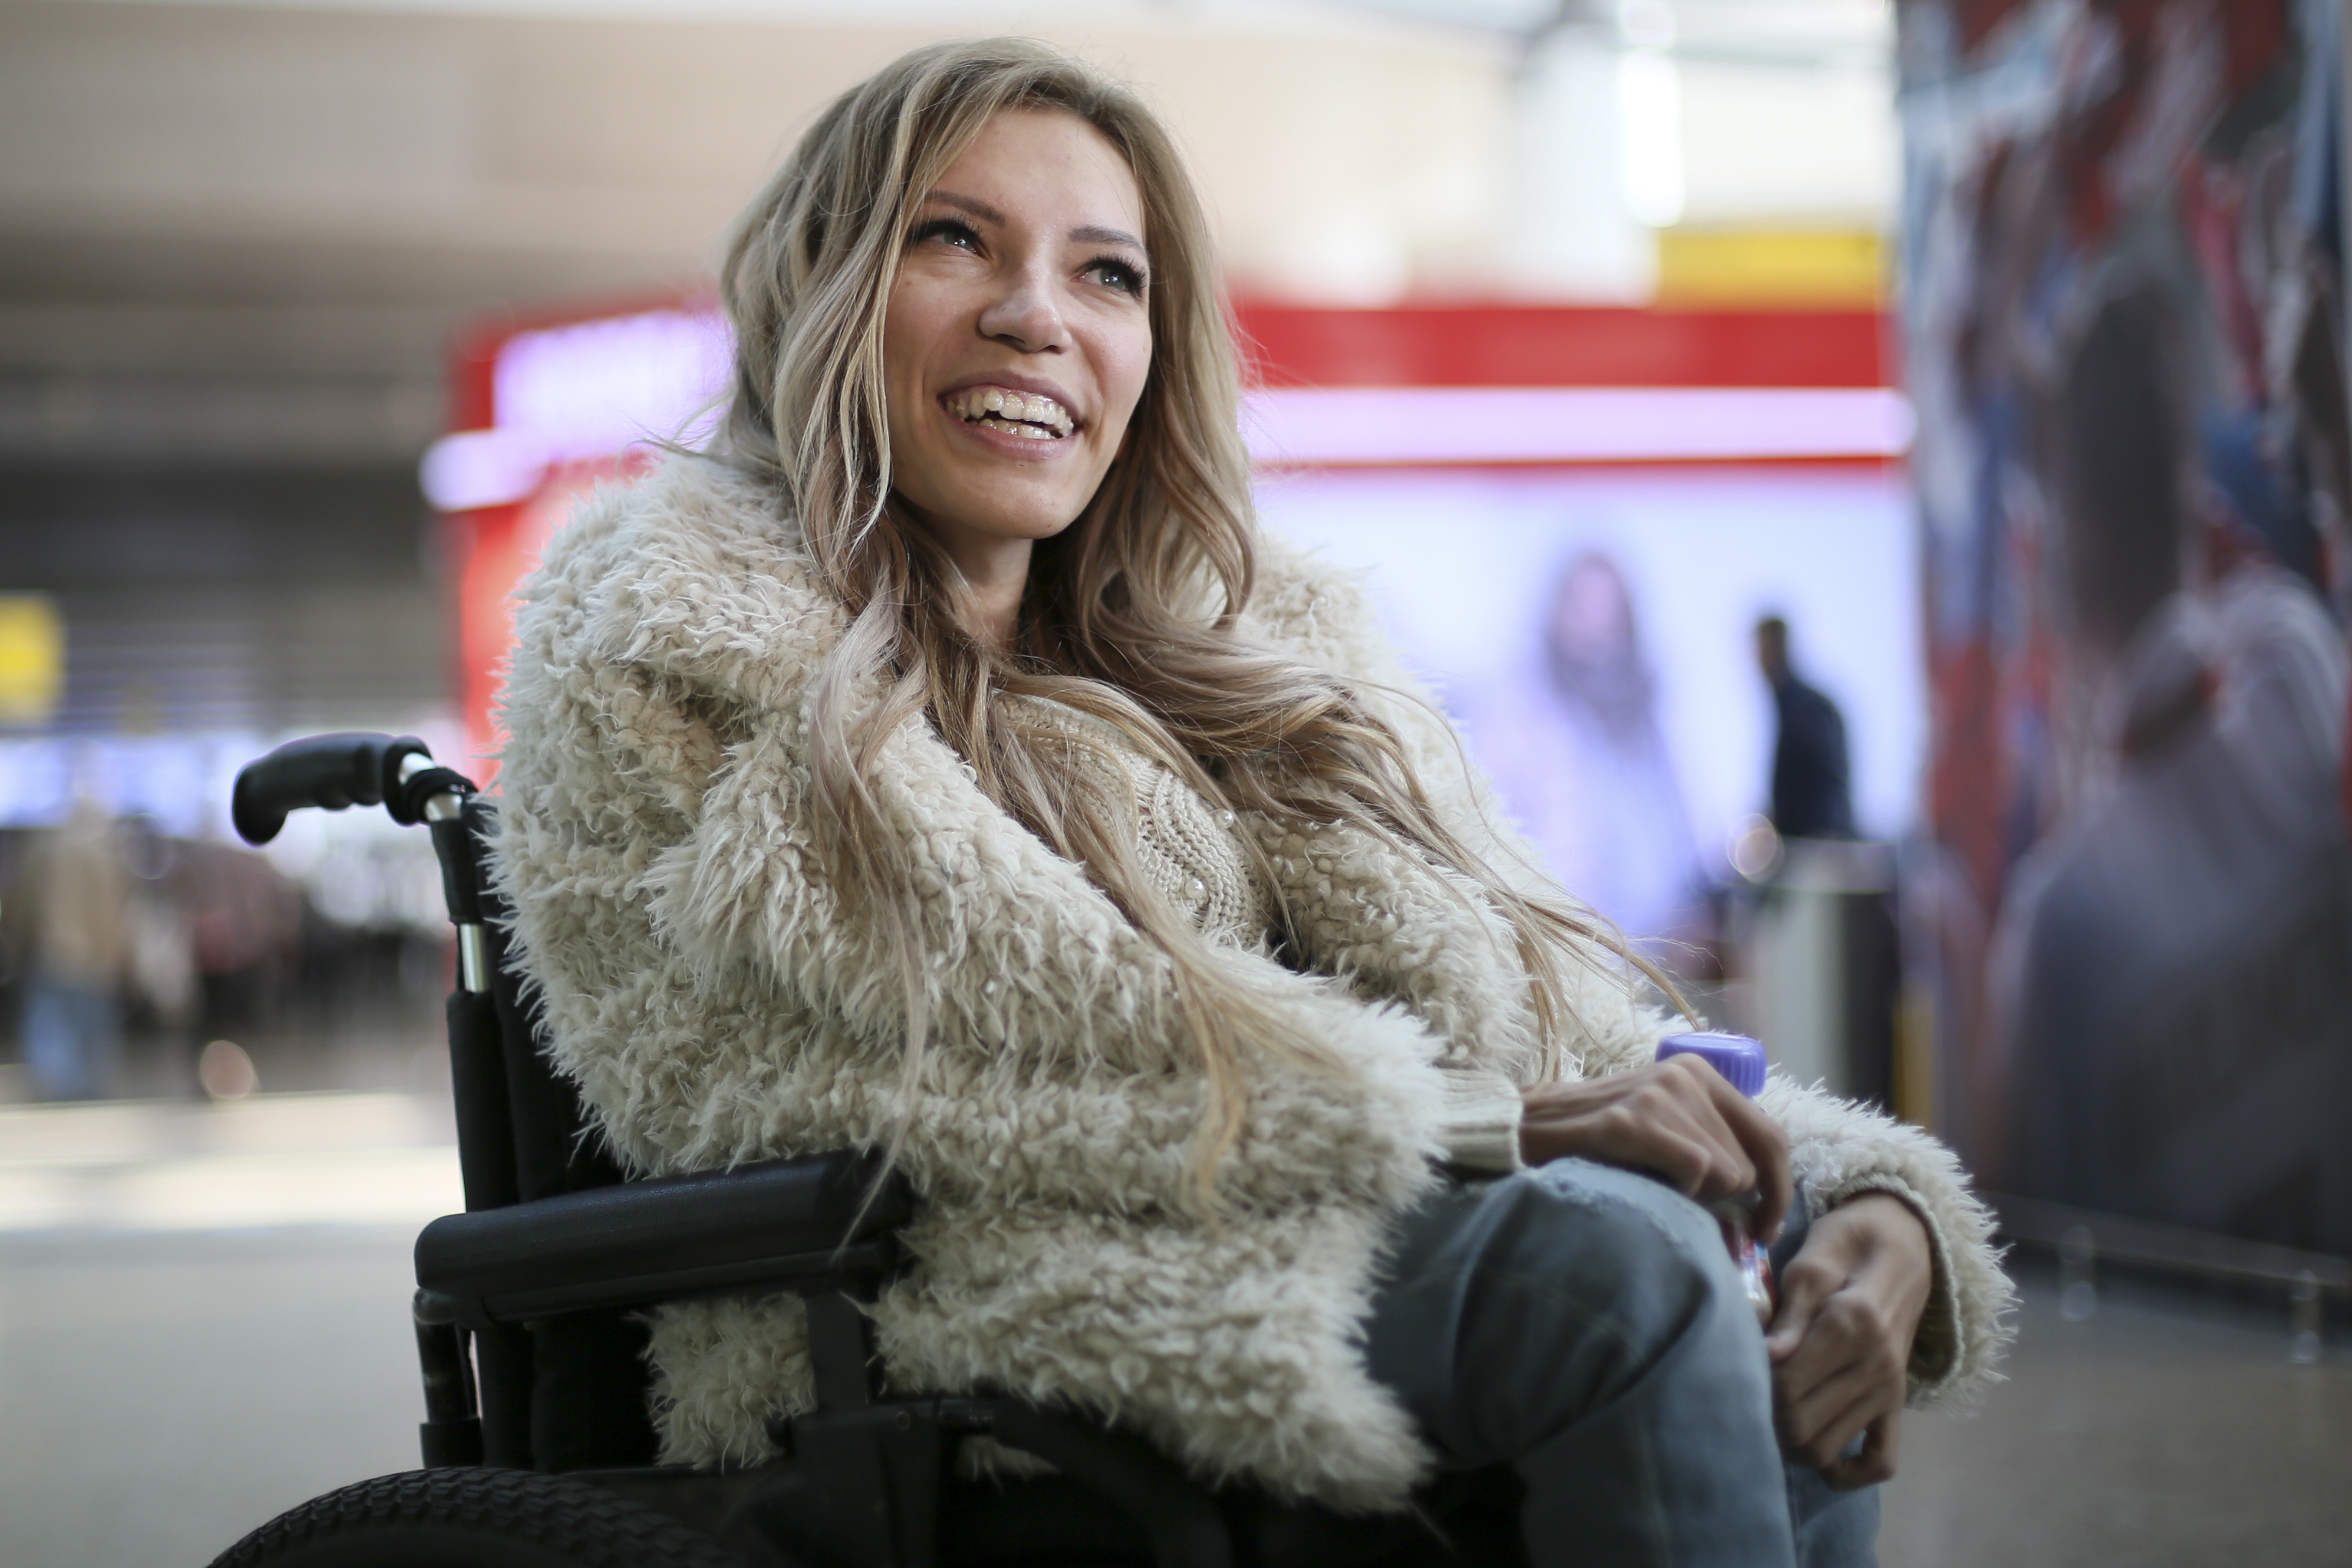 Russia's Eurovision song contest entrant Yulia Samoylova. (AP Photo/Maria Antipina)